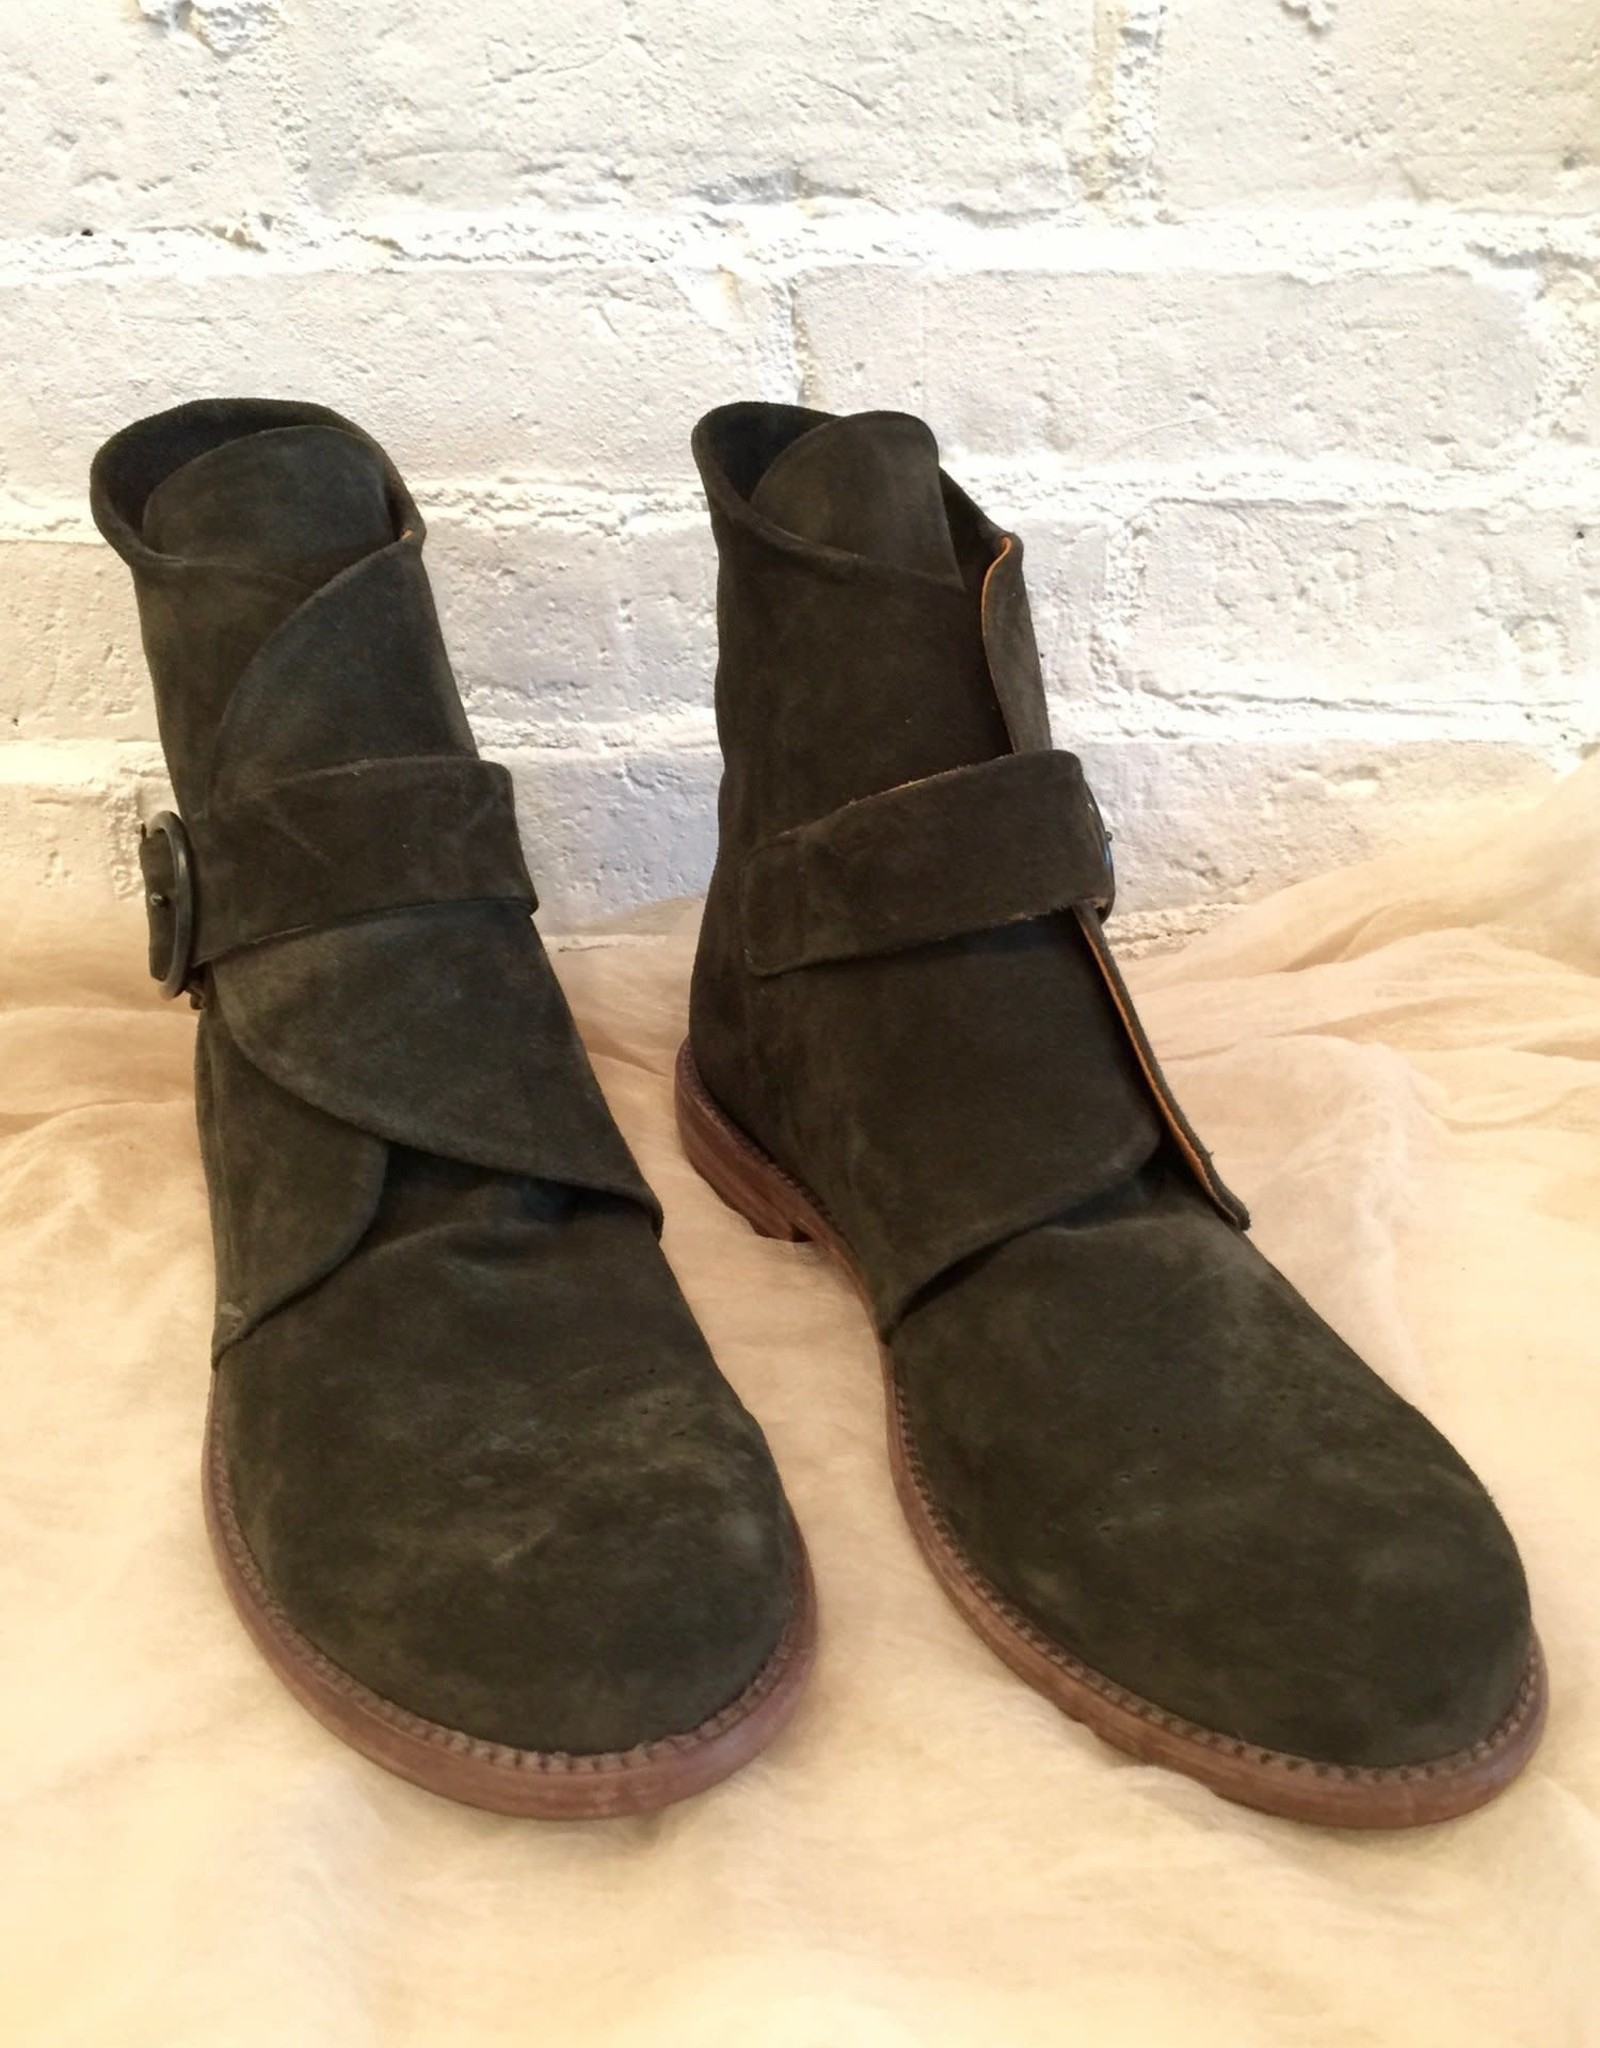 P. Monjo P. Monjo Suede Baker Boot